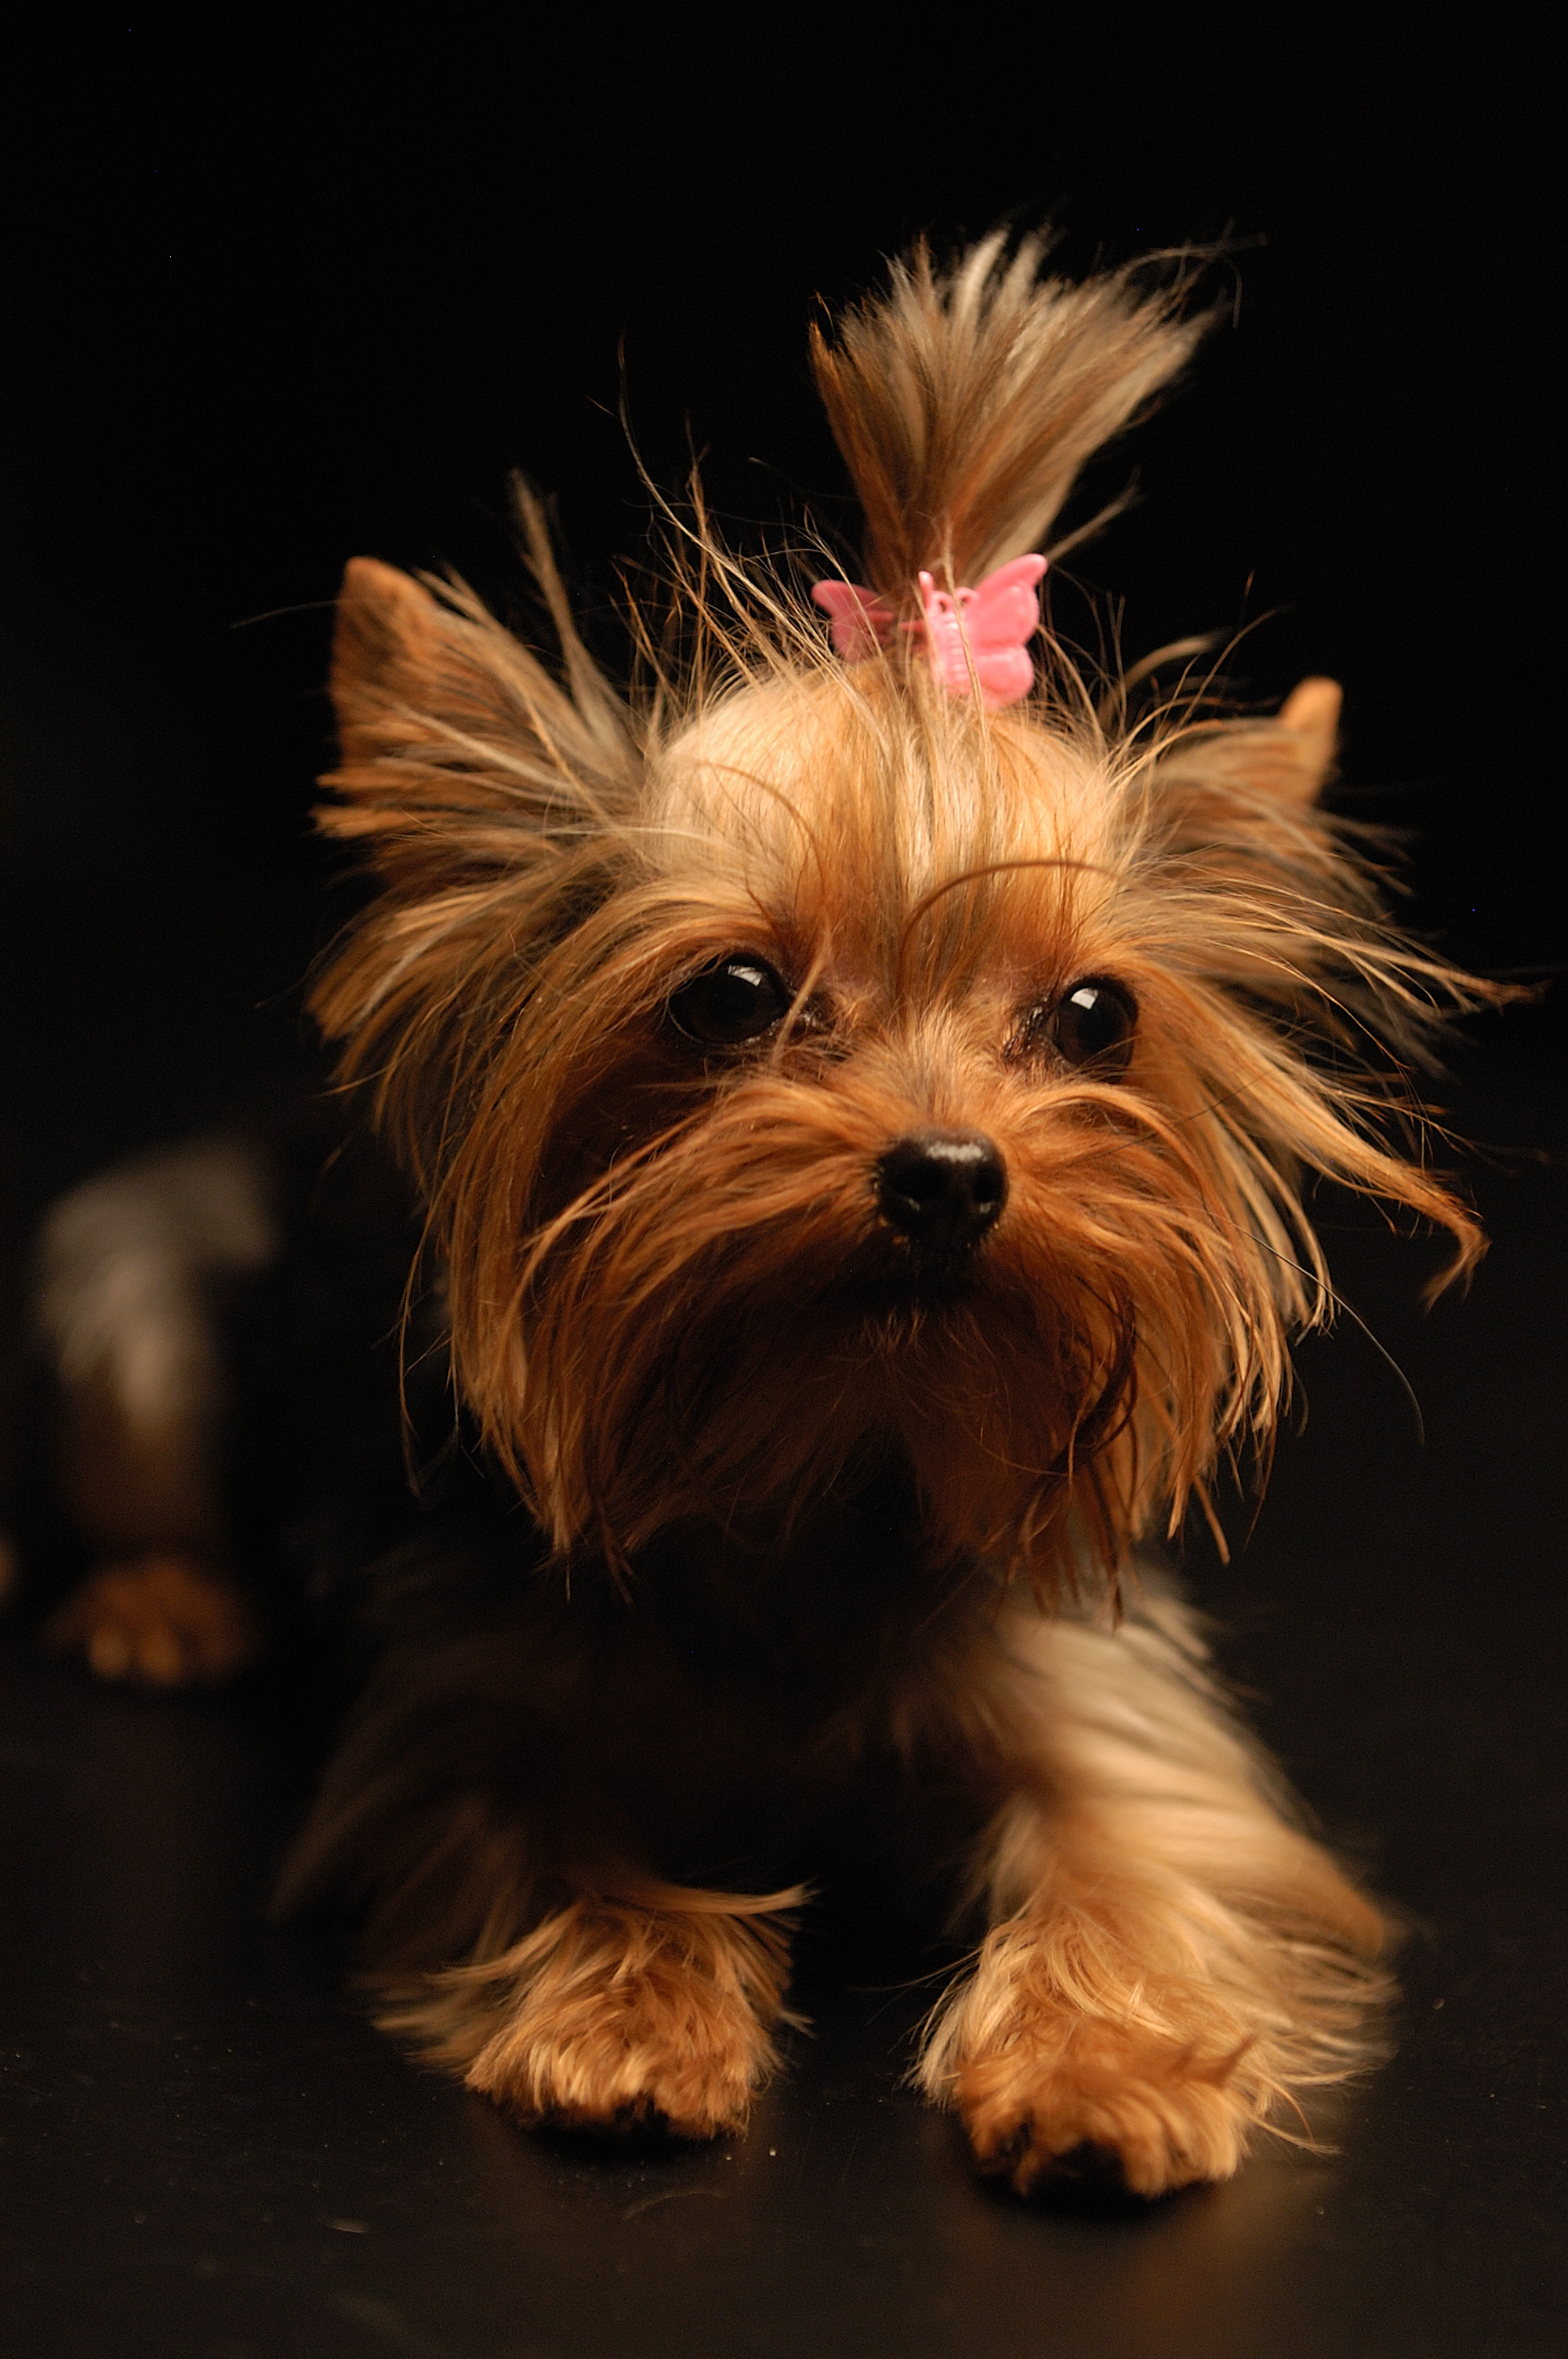 free online images of yorkshire terrier for sale